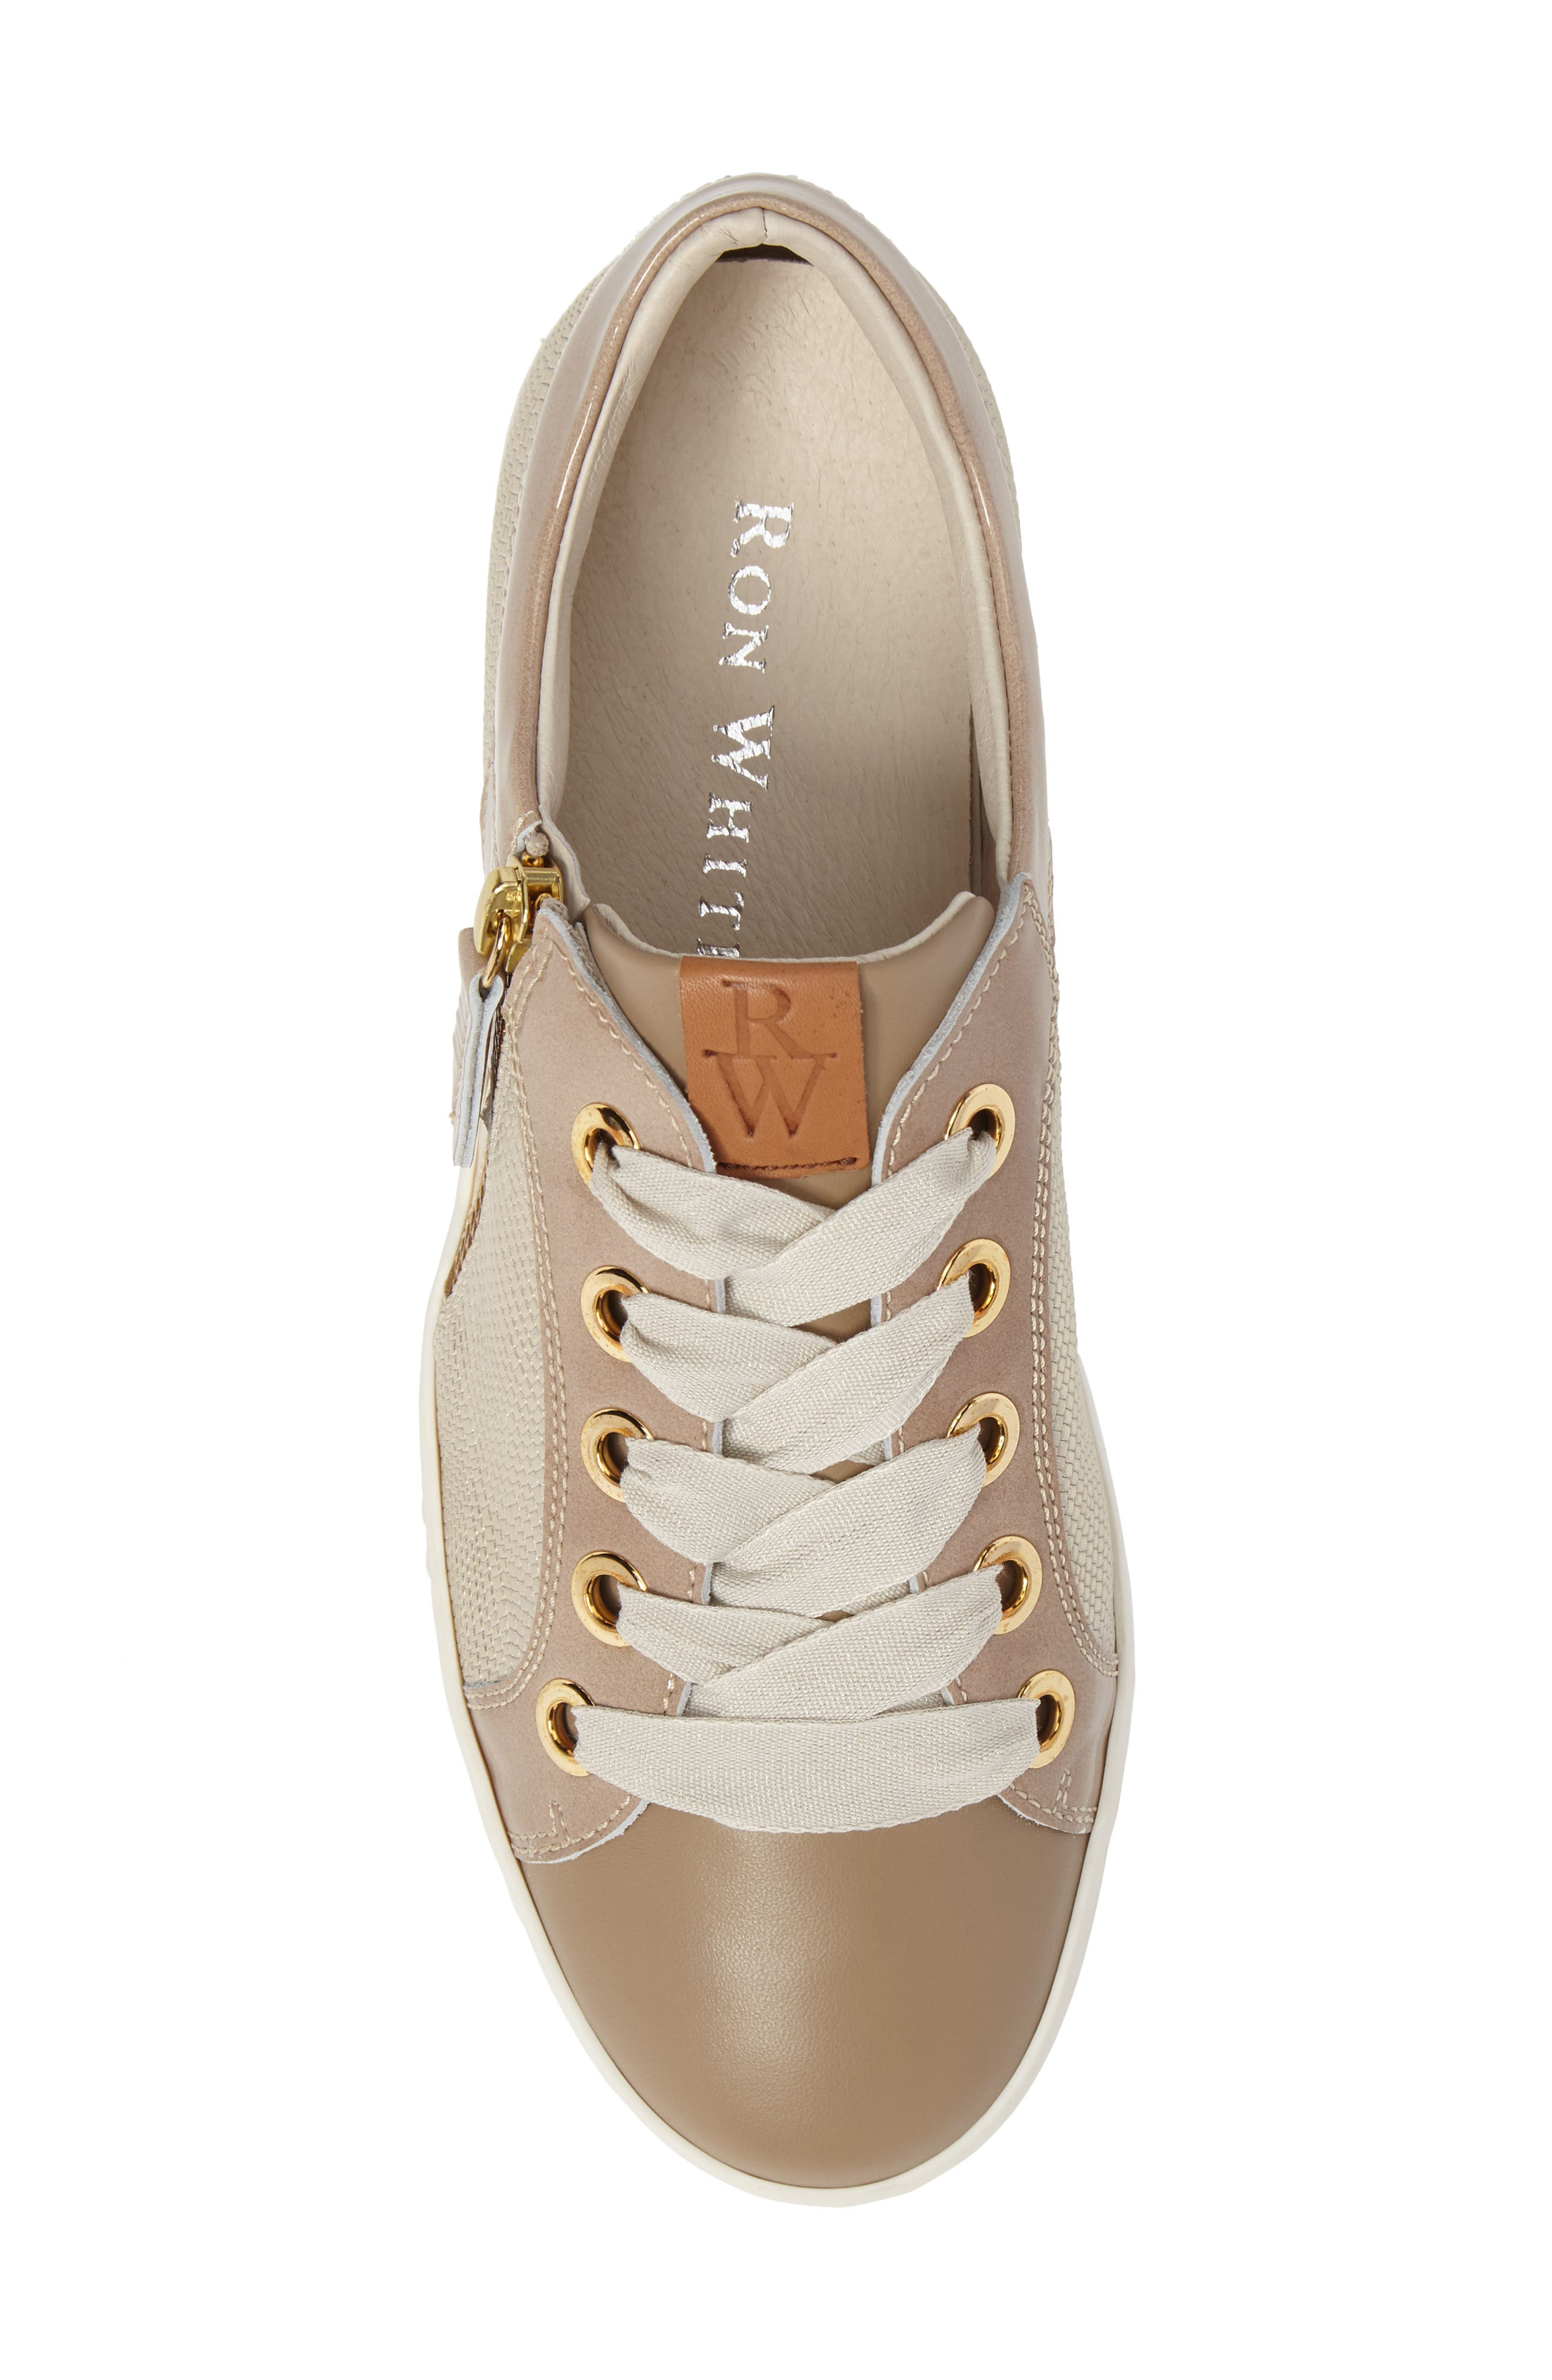 May Sneaker,                             Alternate thumbnail 5, color,                             Nude/ Platino Leather